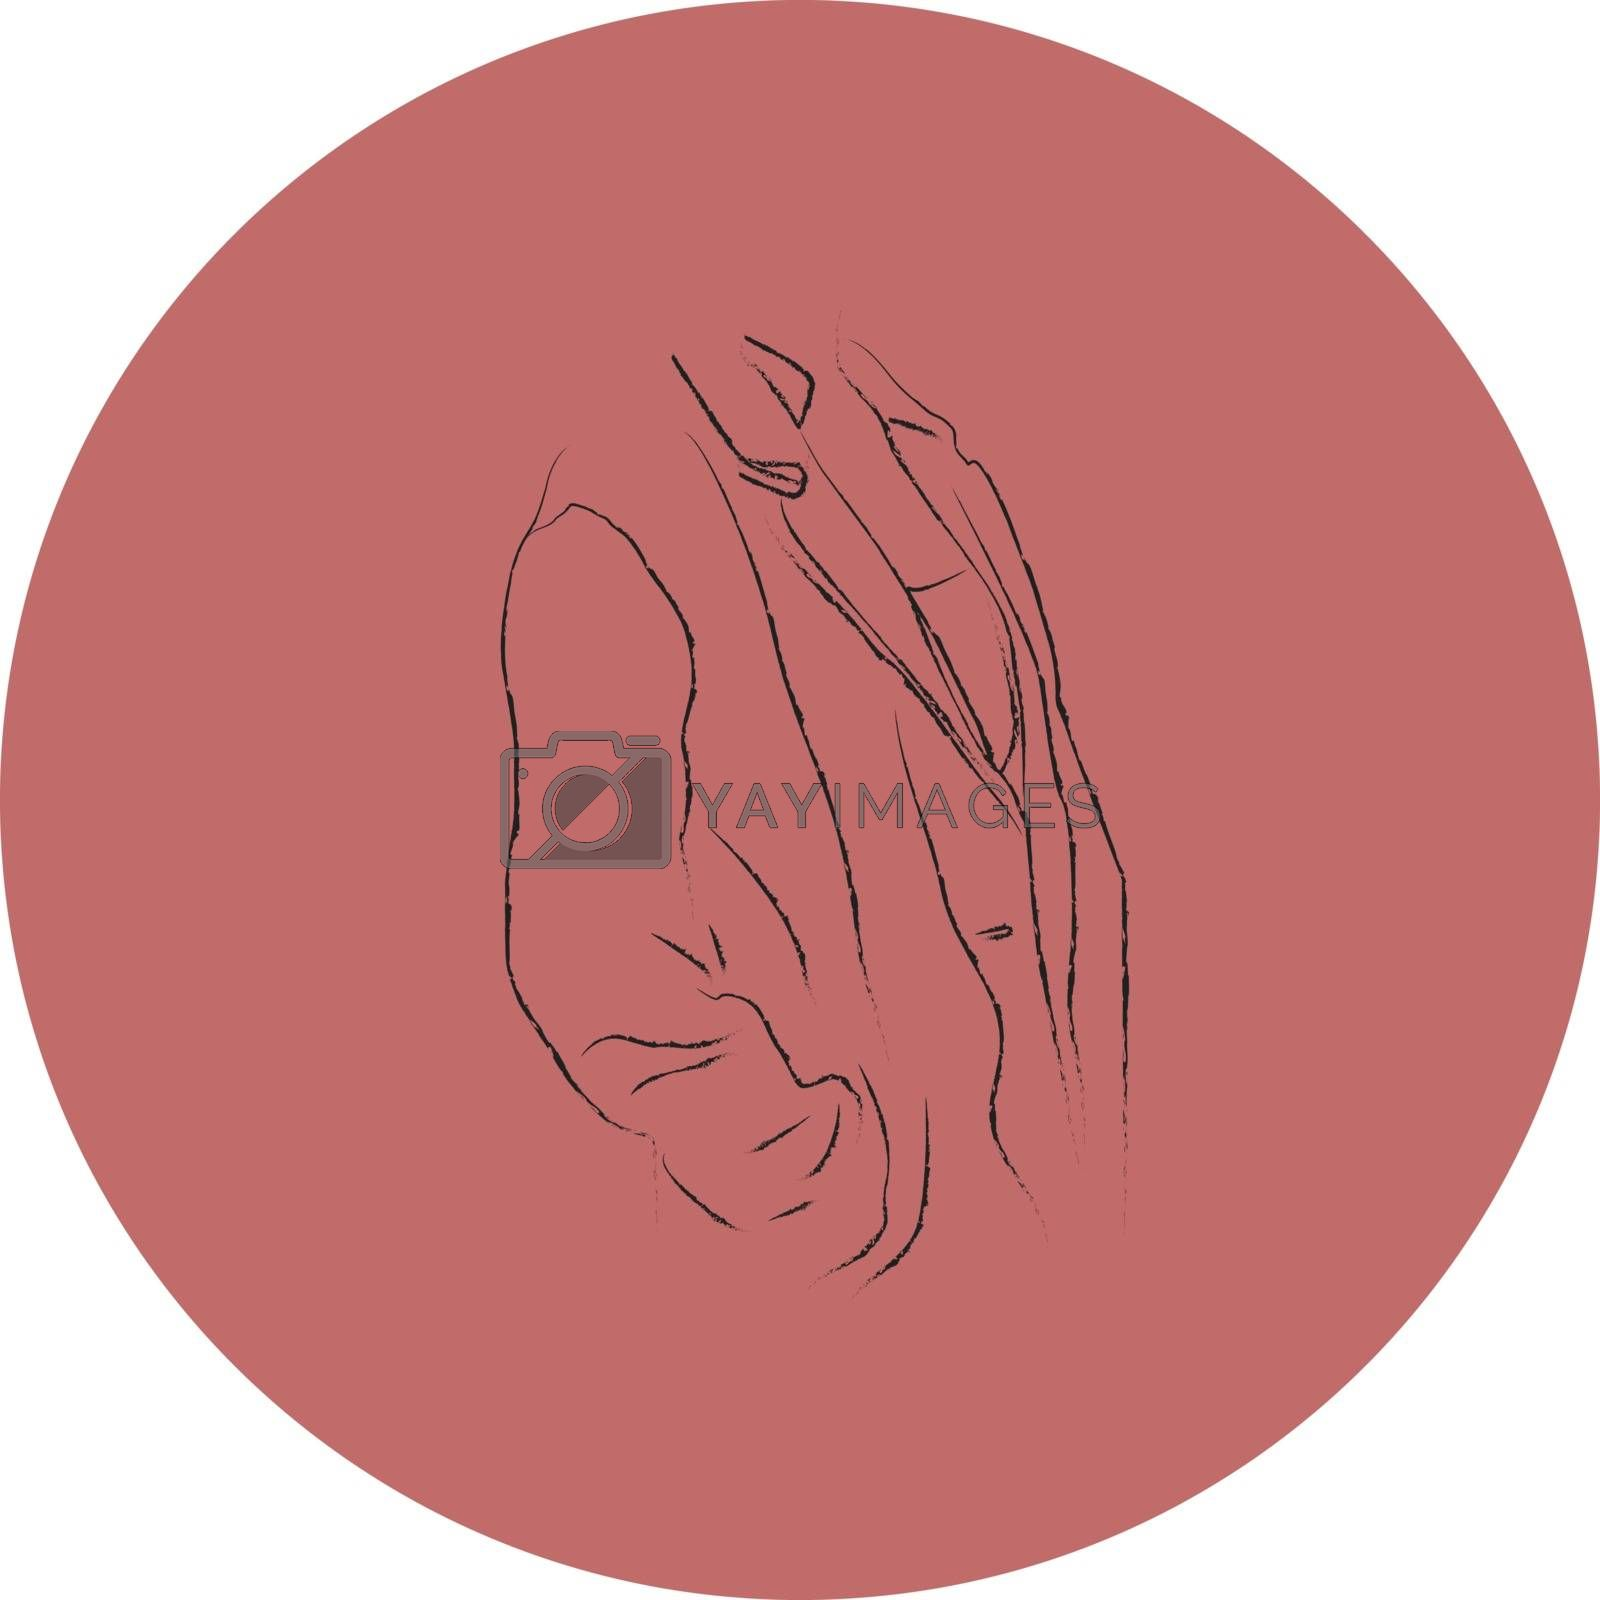 Fashion button, illustration, vector on white background.